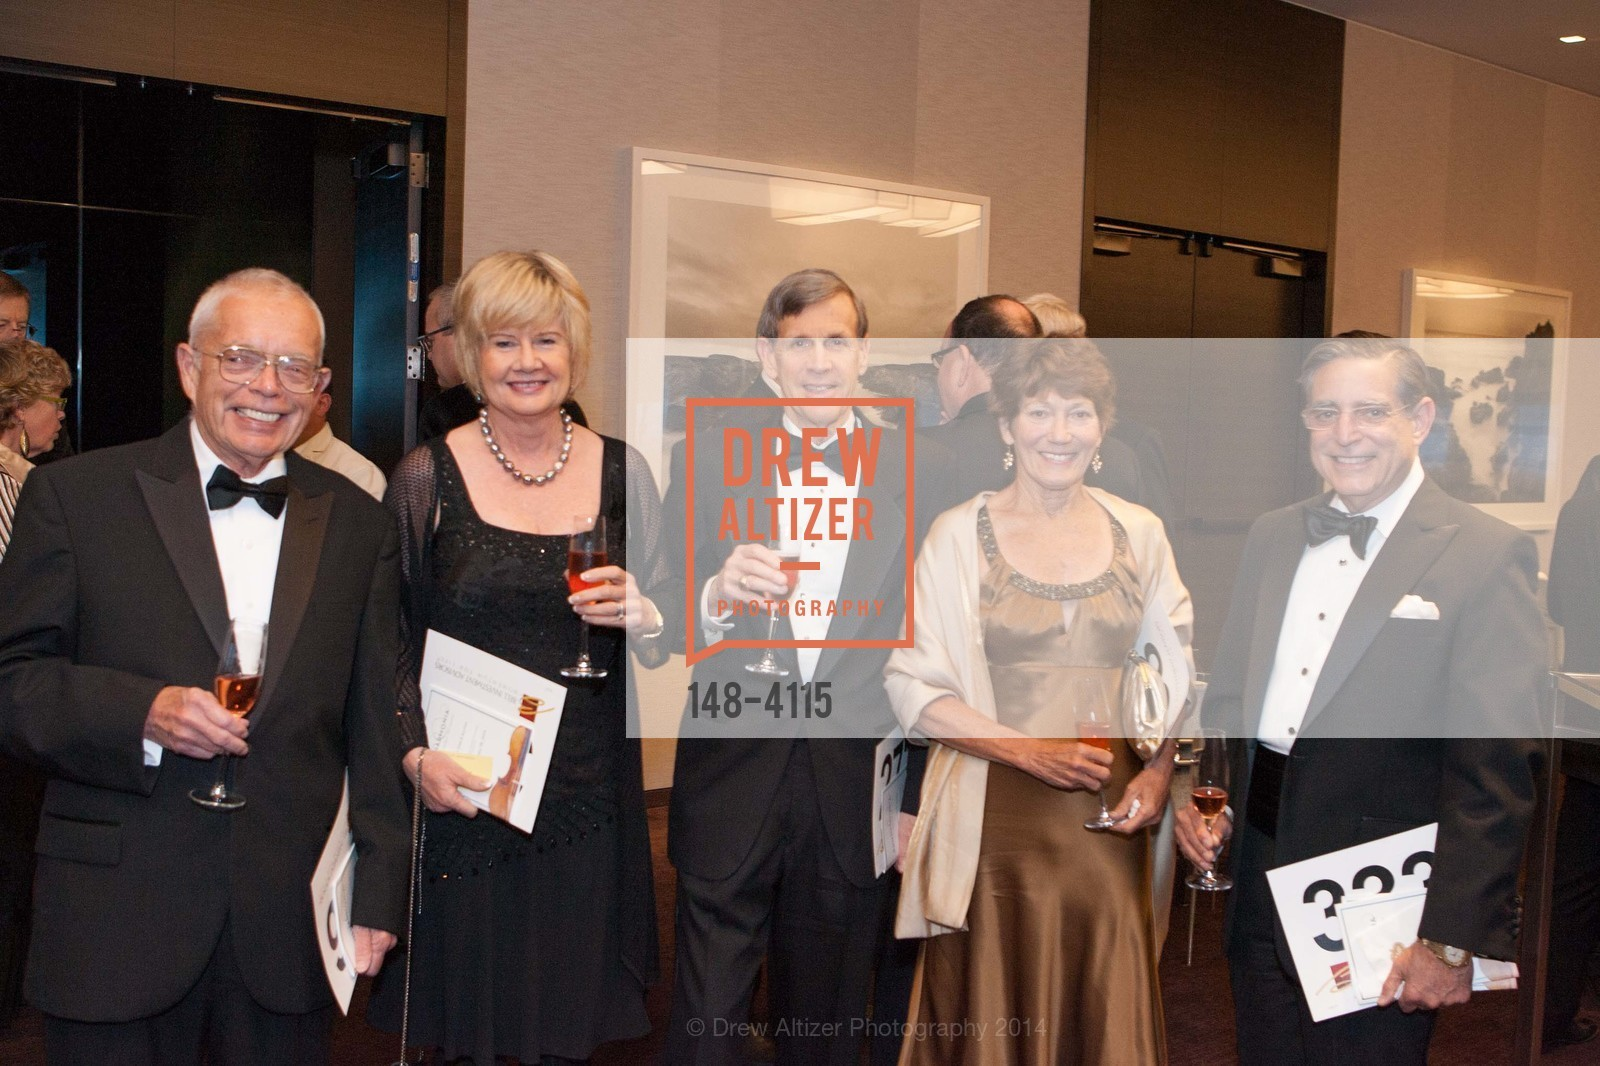 William Lokke, Gabriela Odell, Bruce Tarter, Jeanne Shuler, Paul Sugarman, Photo #148-4115